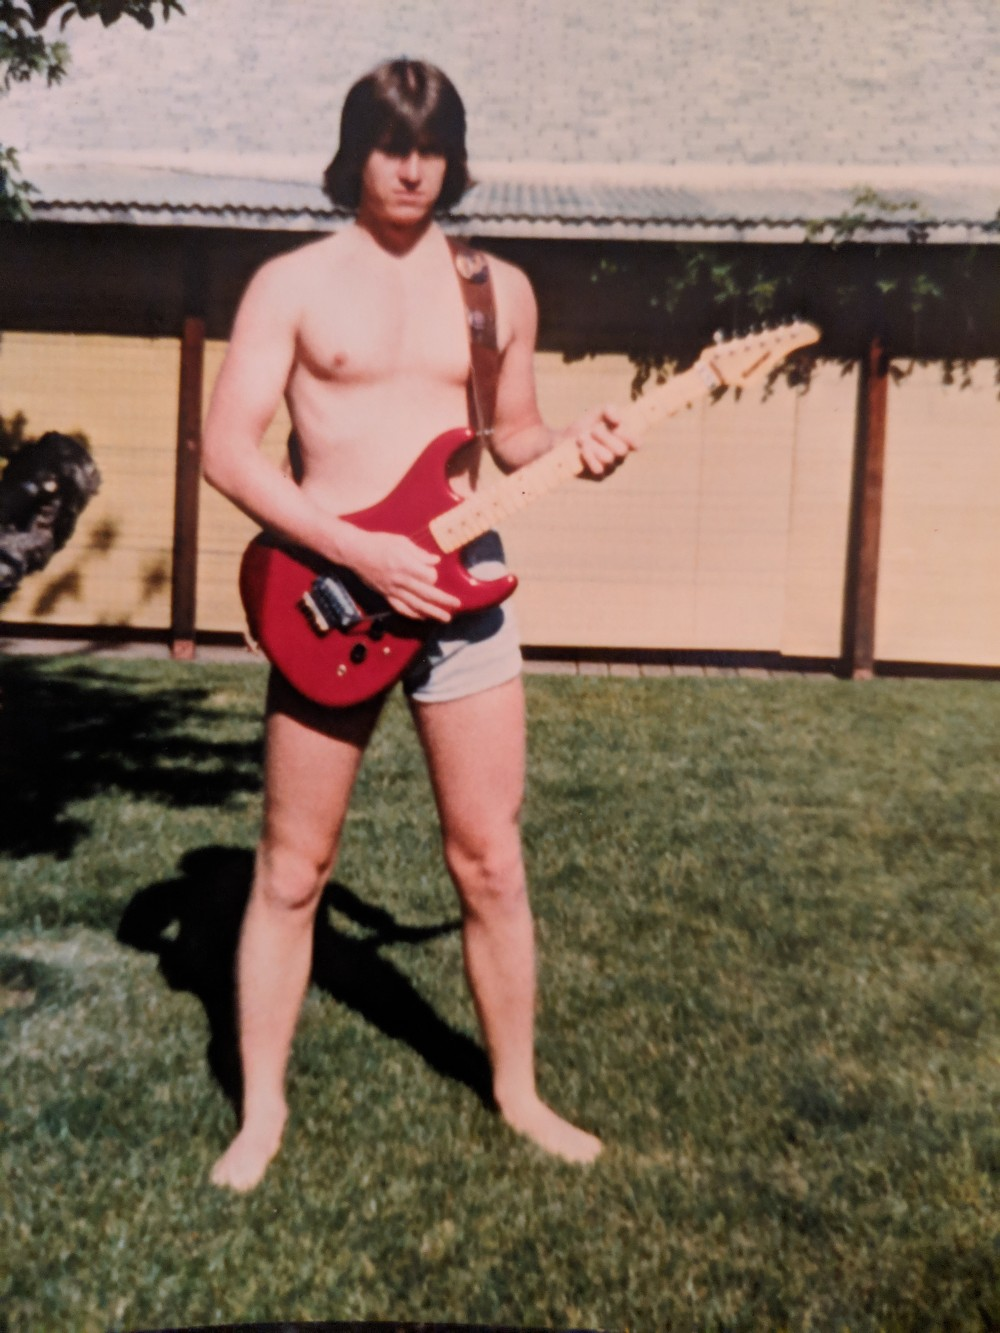 19 Years old shirtless with Kramer Pacer in backyard in Corvallis